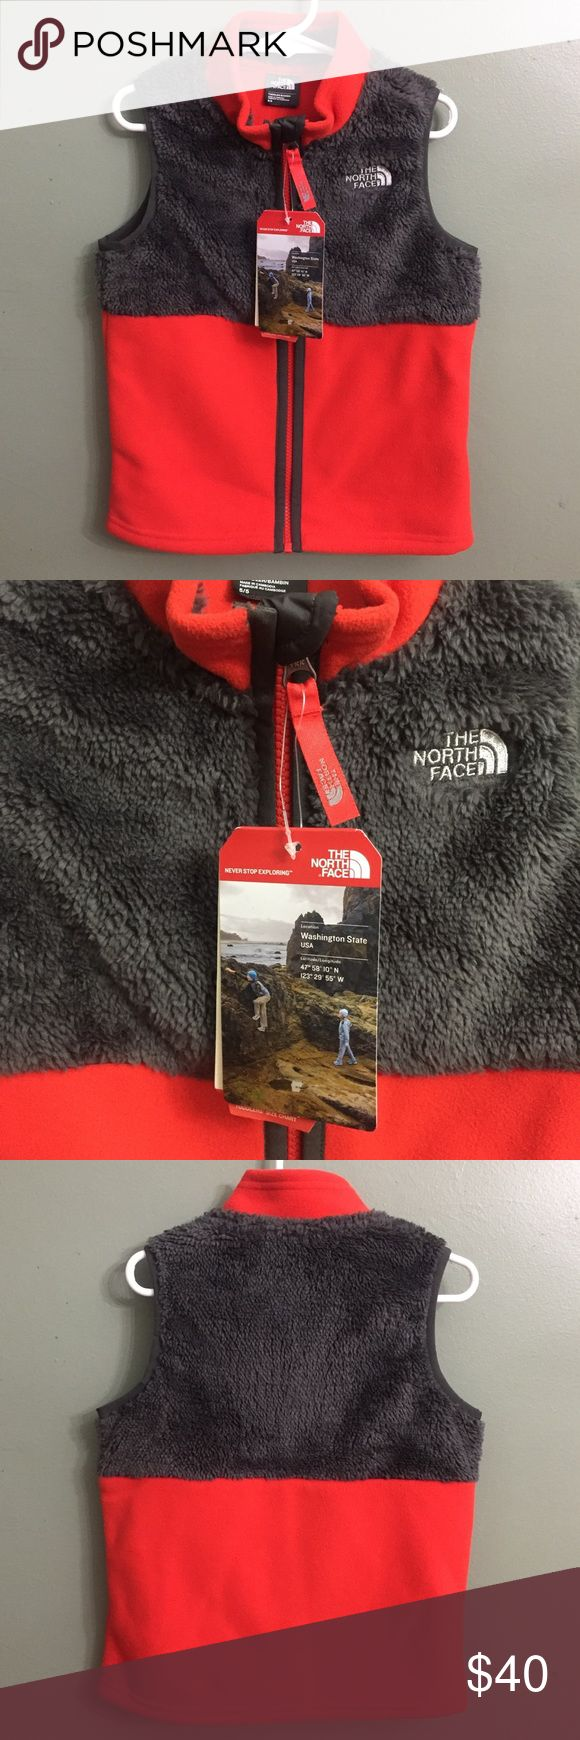 NWT The North Face Toddler Chimbo Vest, 5 NWT The North Face Toddler Chimbo Vest, 5 The North Face Jackets & Coats Vests